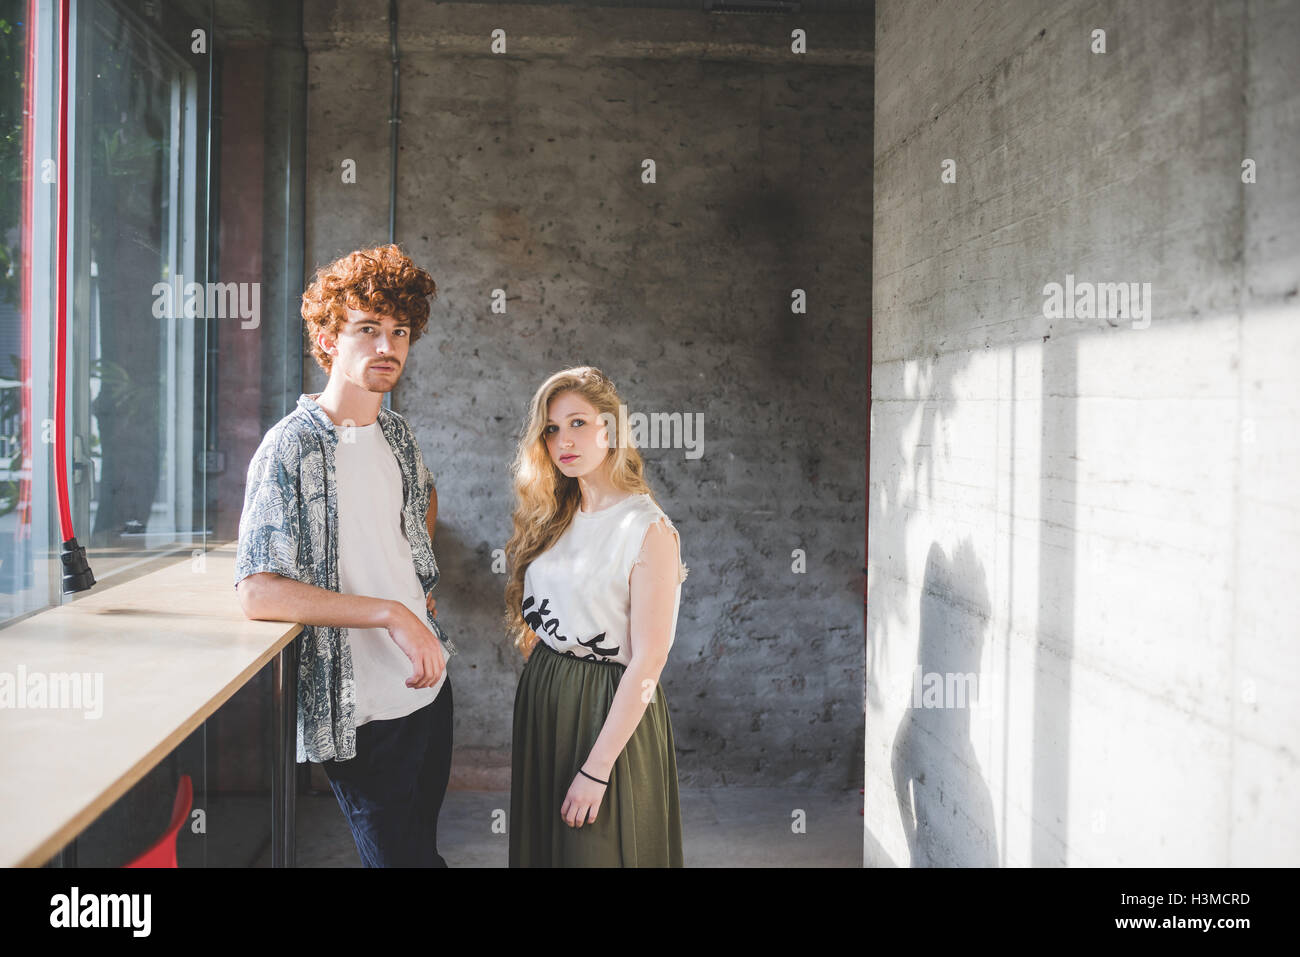 Co-workers beside bar counter by window - Stock Image